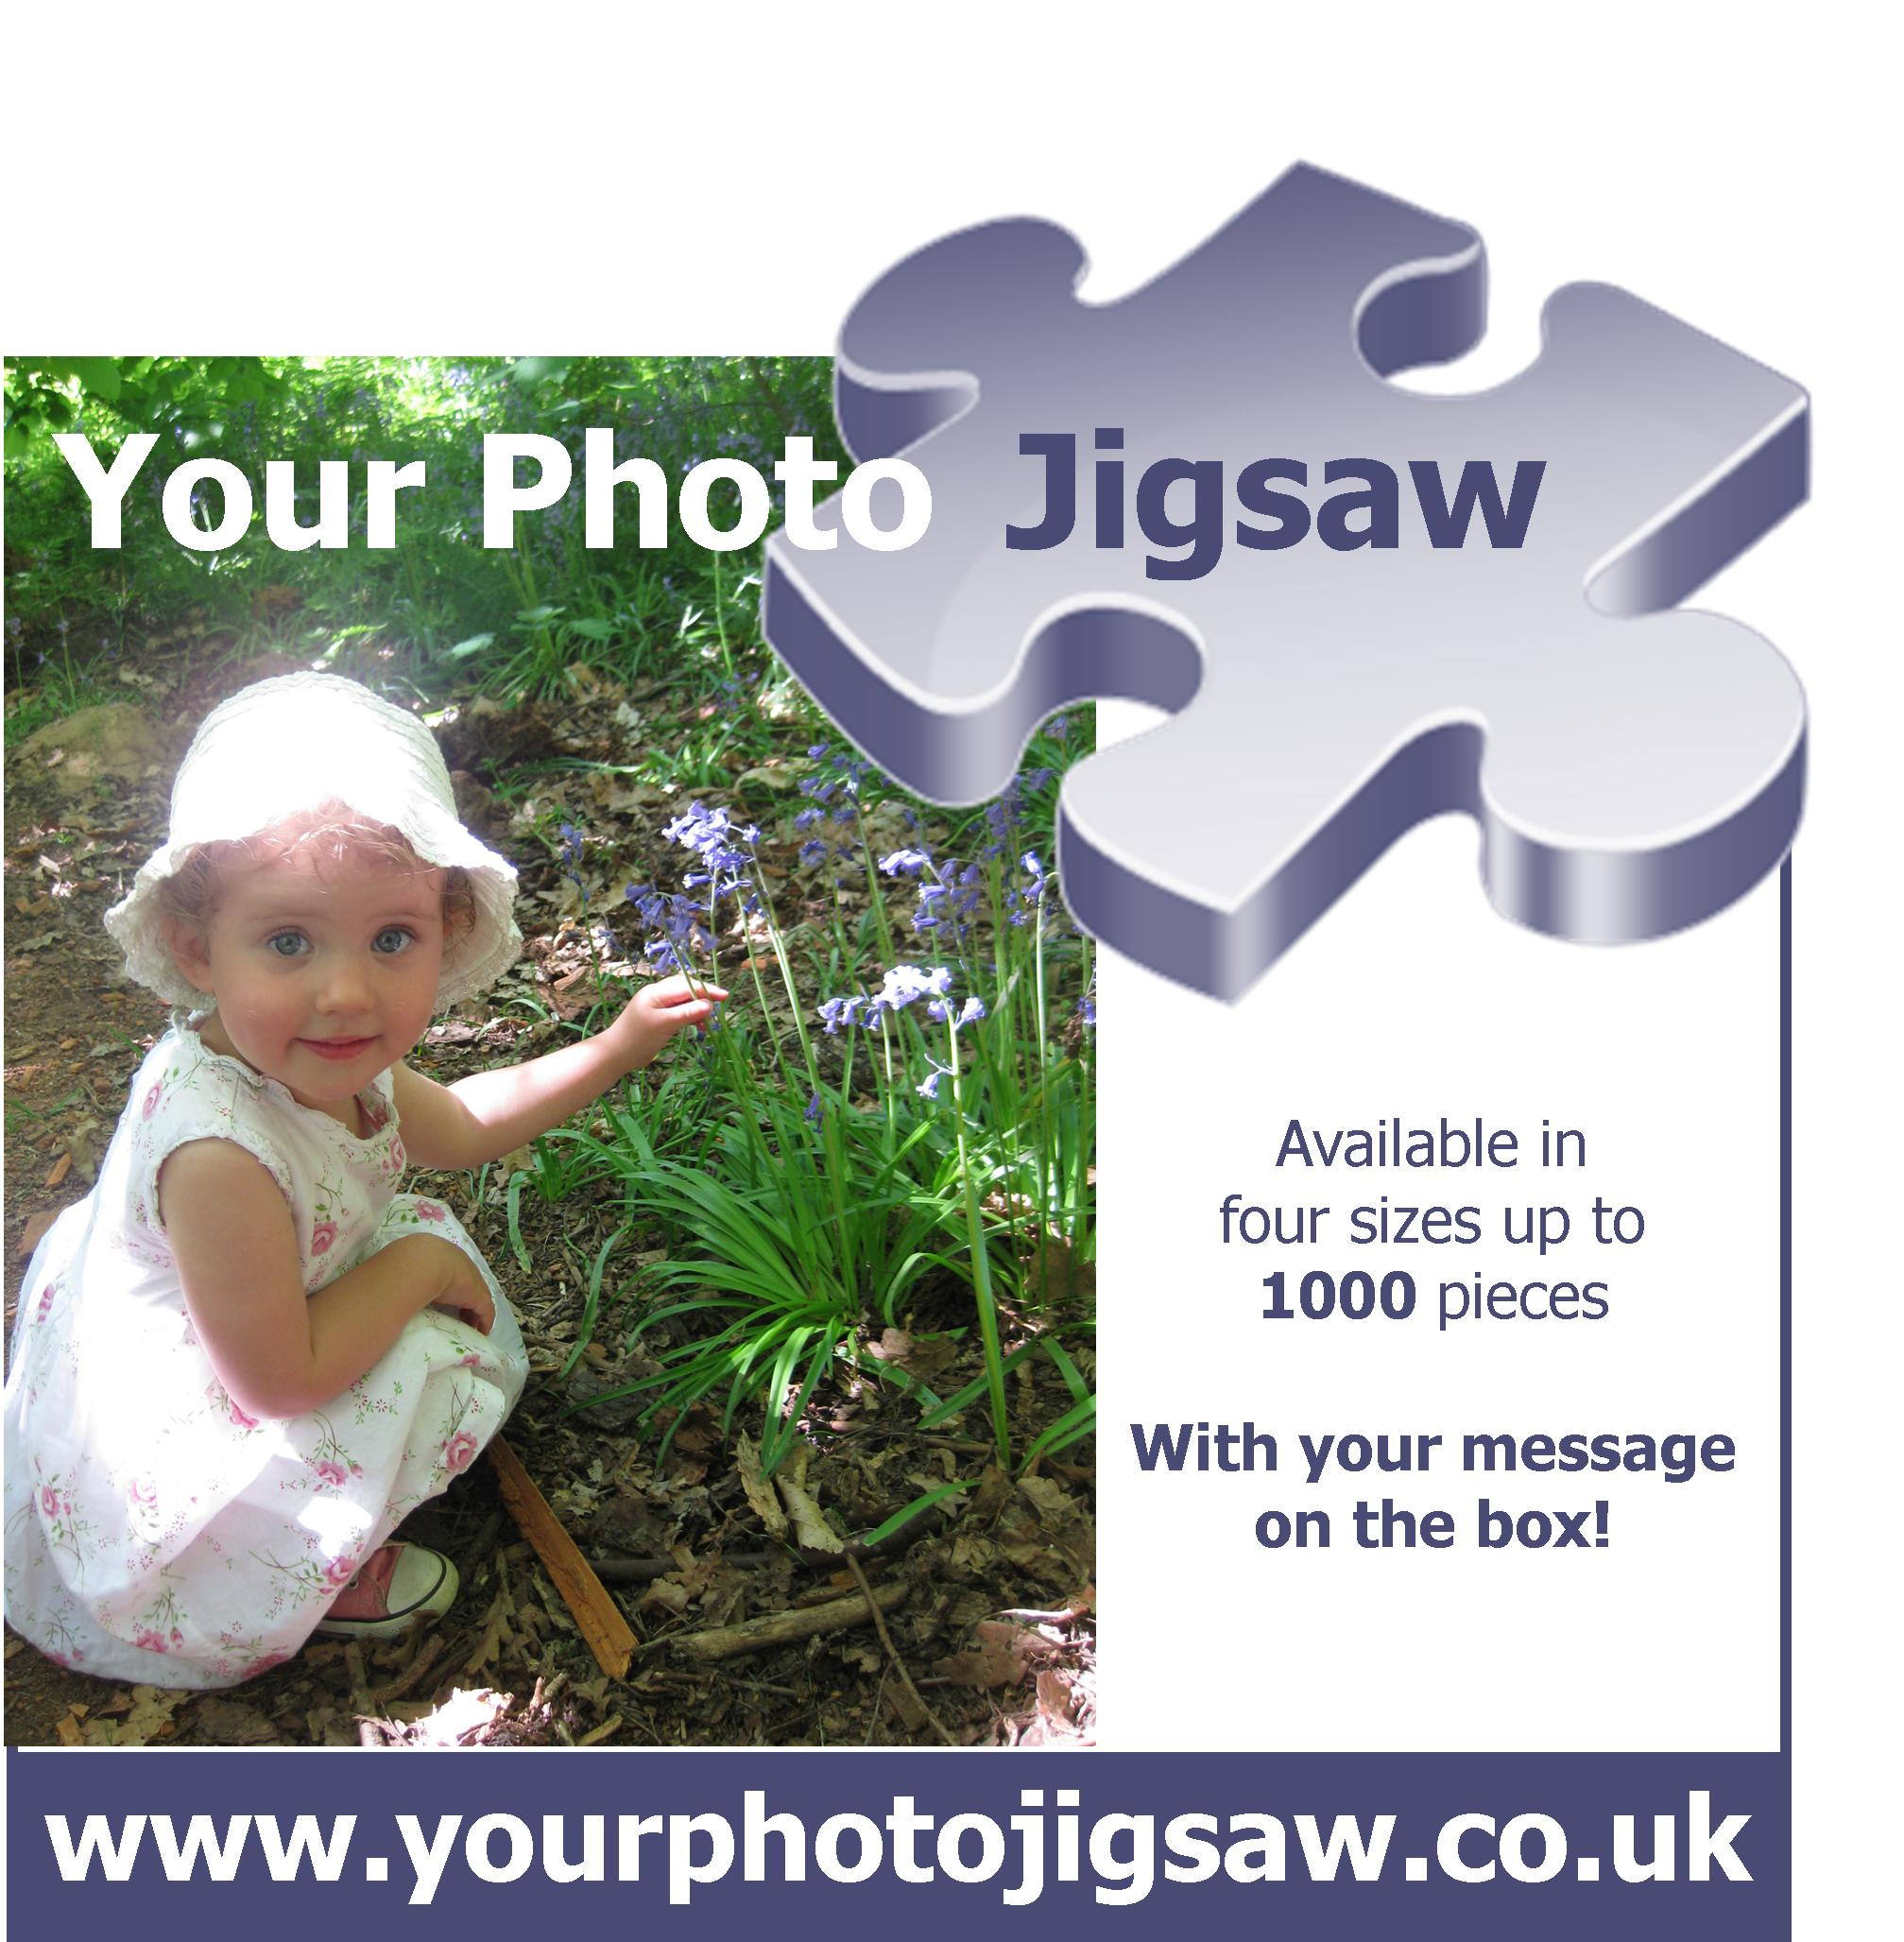 Your Photo Jigsaw